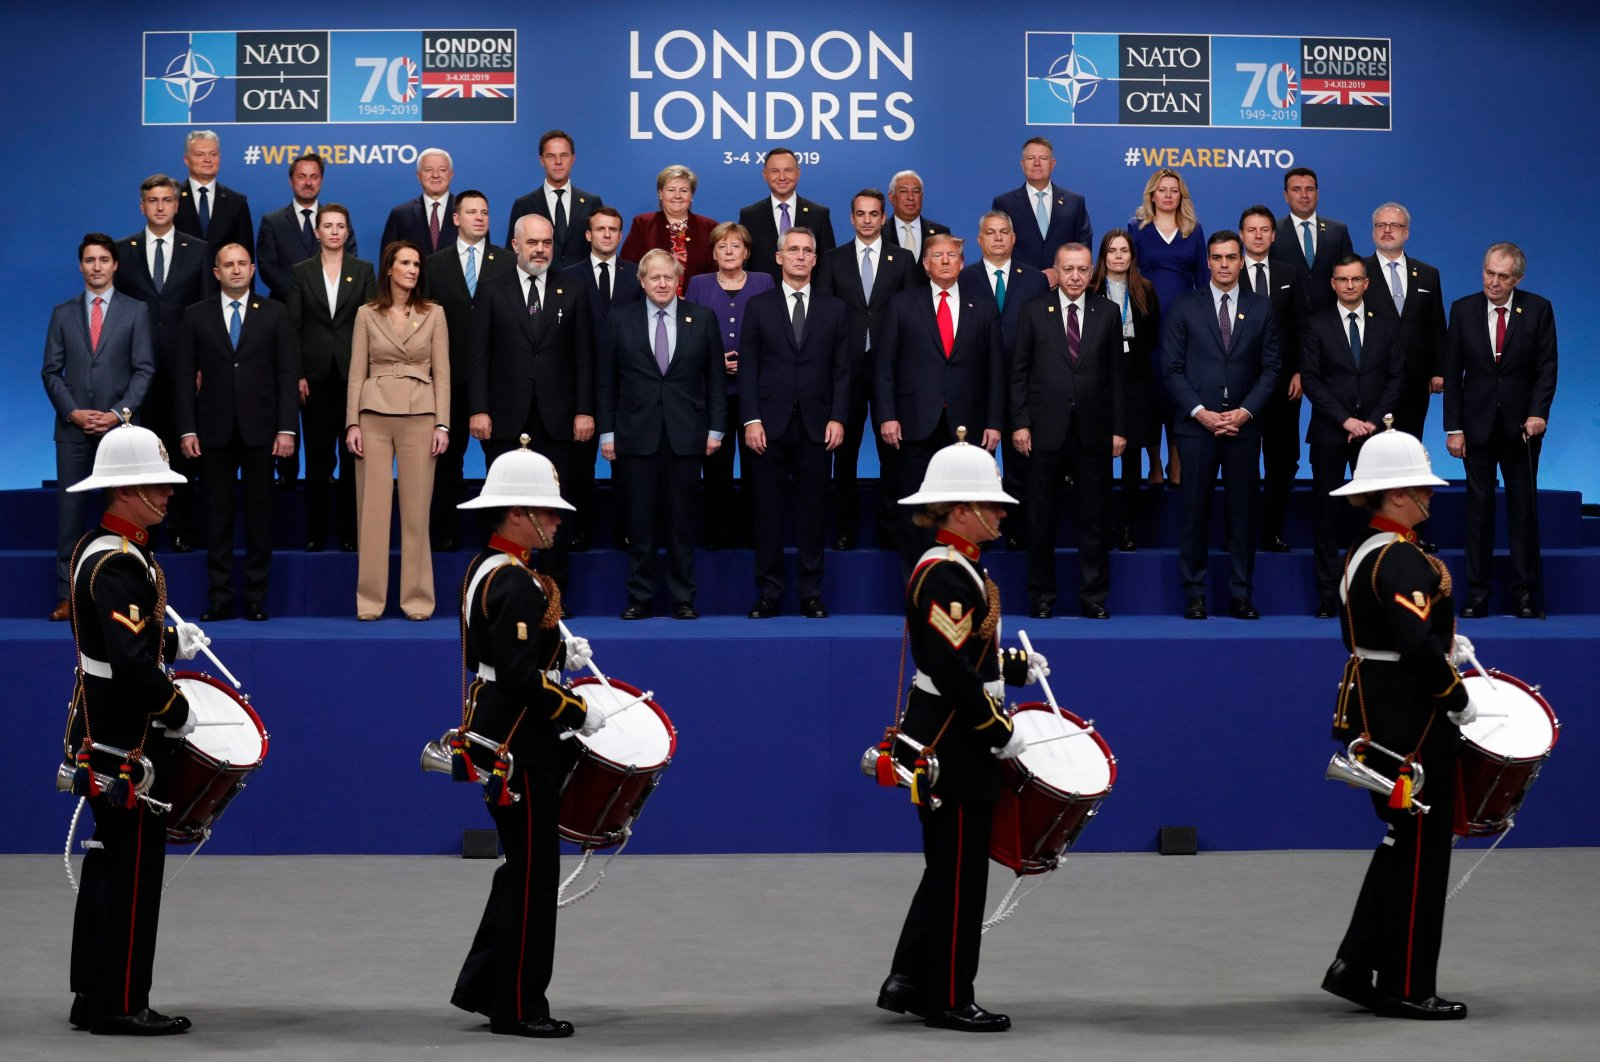 Heads of government watch a marching band perform as they pose for a family photo at the NATO summit at the Grove hotel in Watford, northeast of London, Dec. 4, 2019. (AFP Photo)